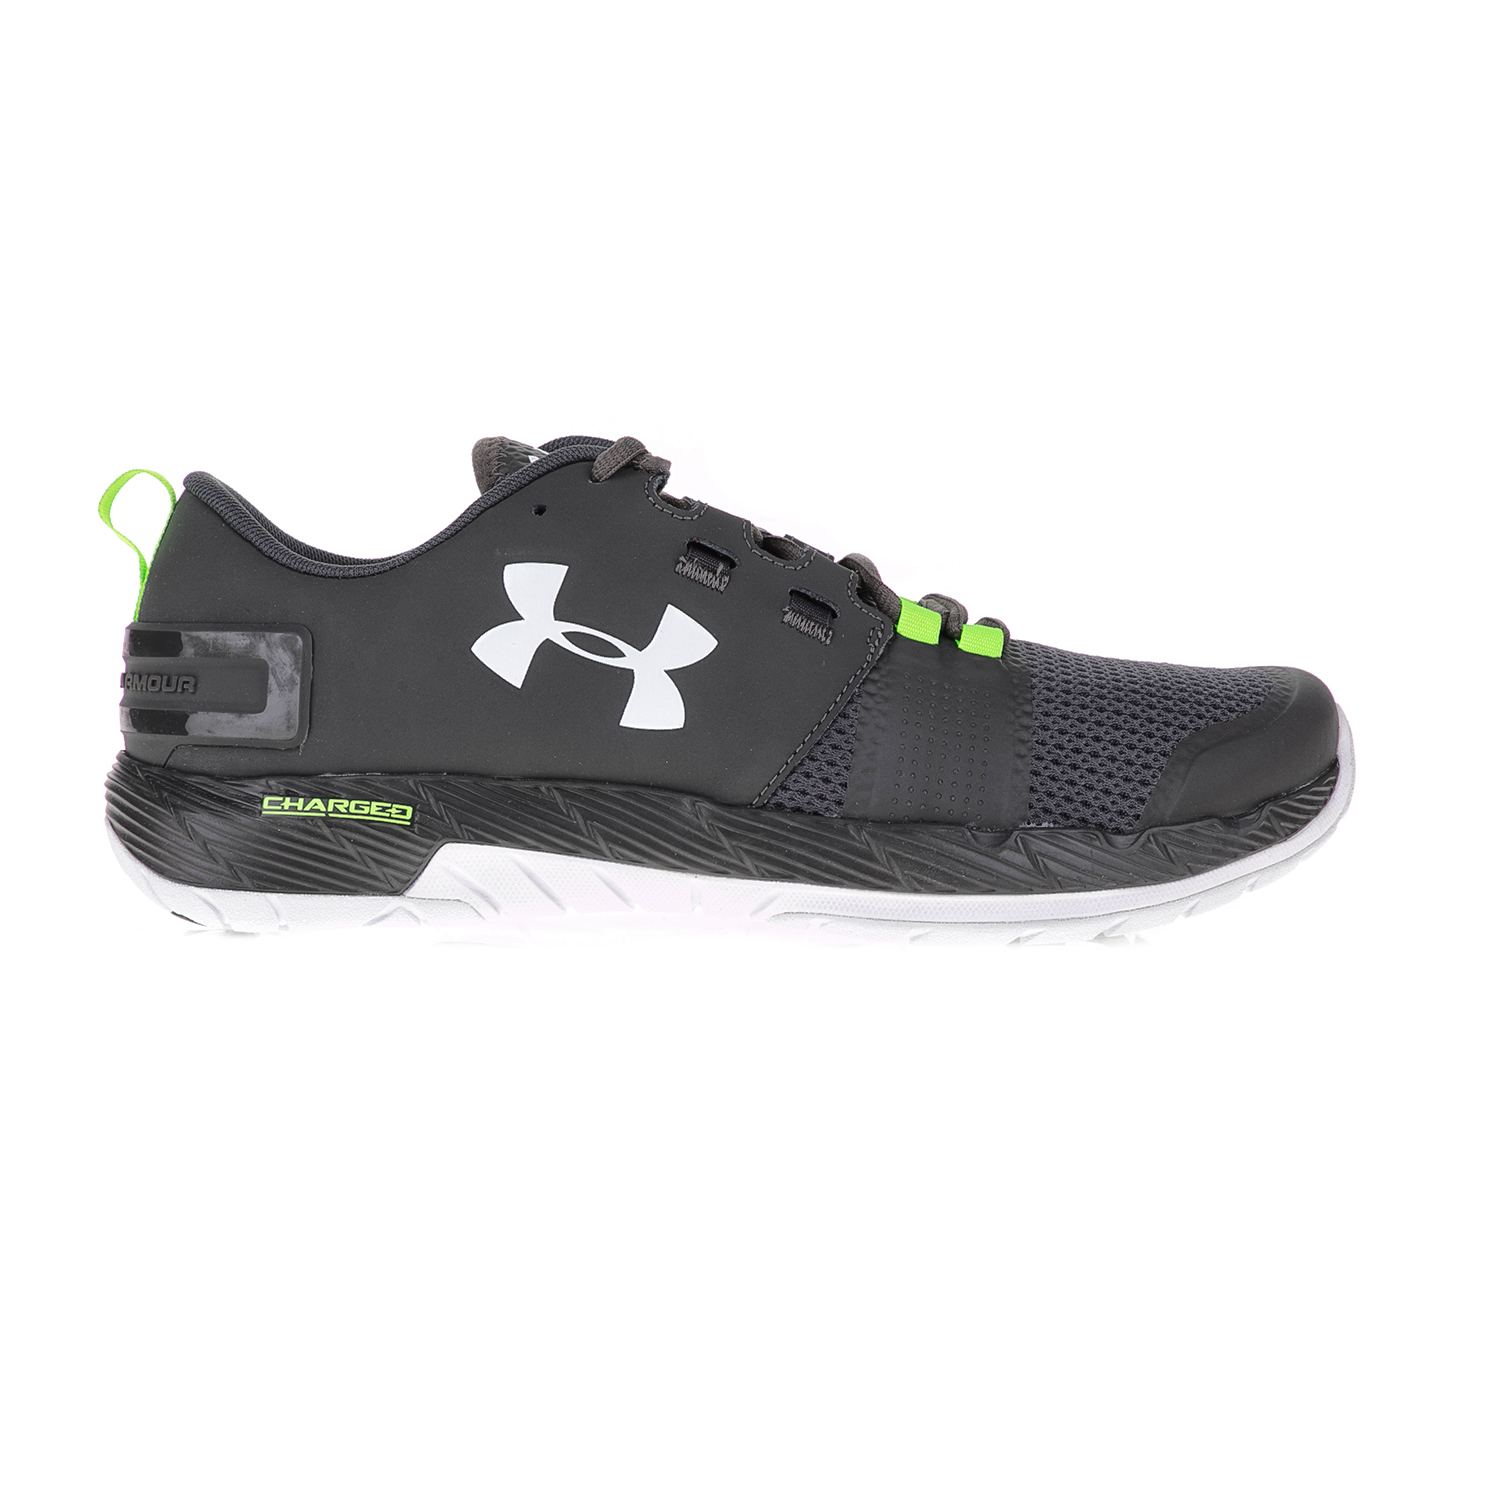 UNDER ARMOUR - Ανδρικά αθλητικά παπούτσια UNDER ARMOUR Commit TR γκρι-πράσινα ανδρικά παπούτσια αθλητικά training